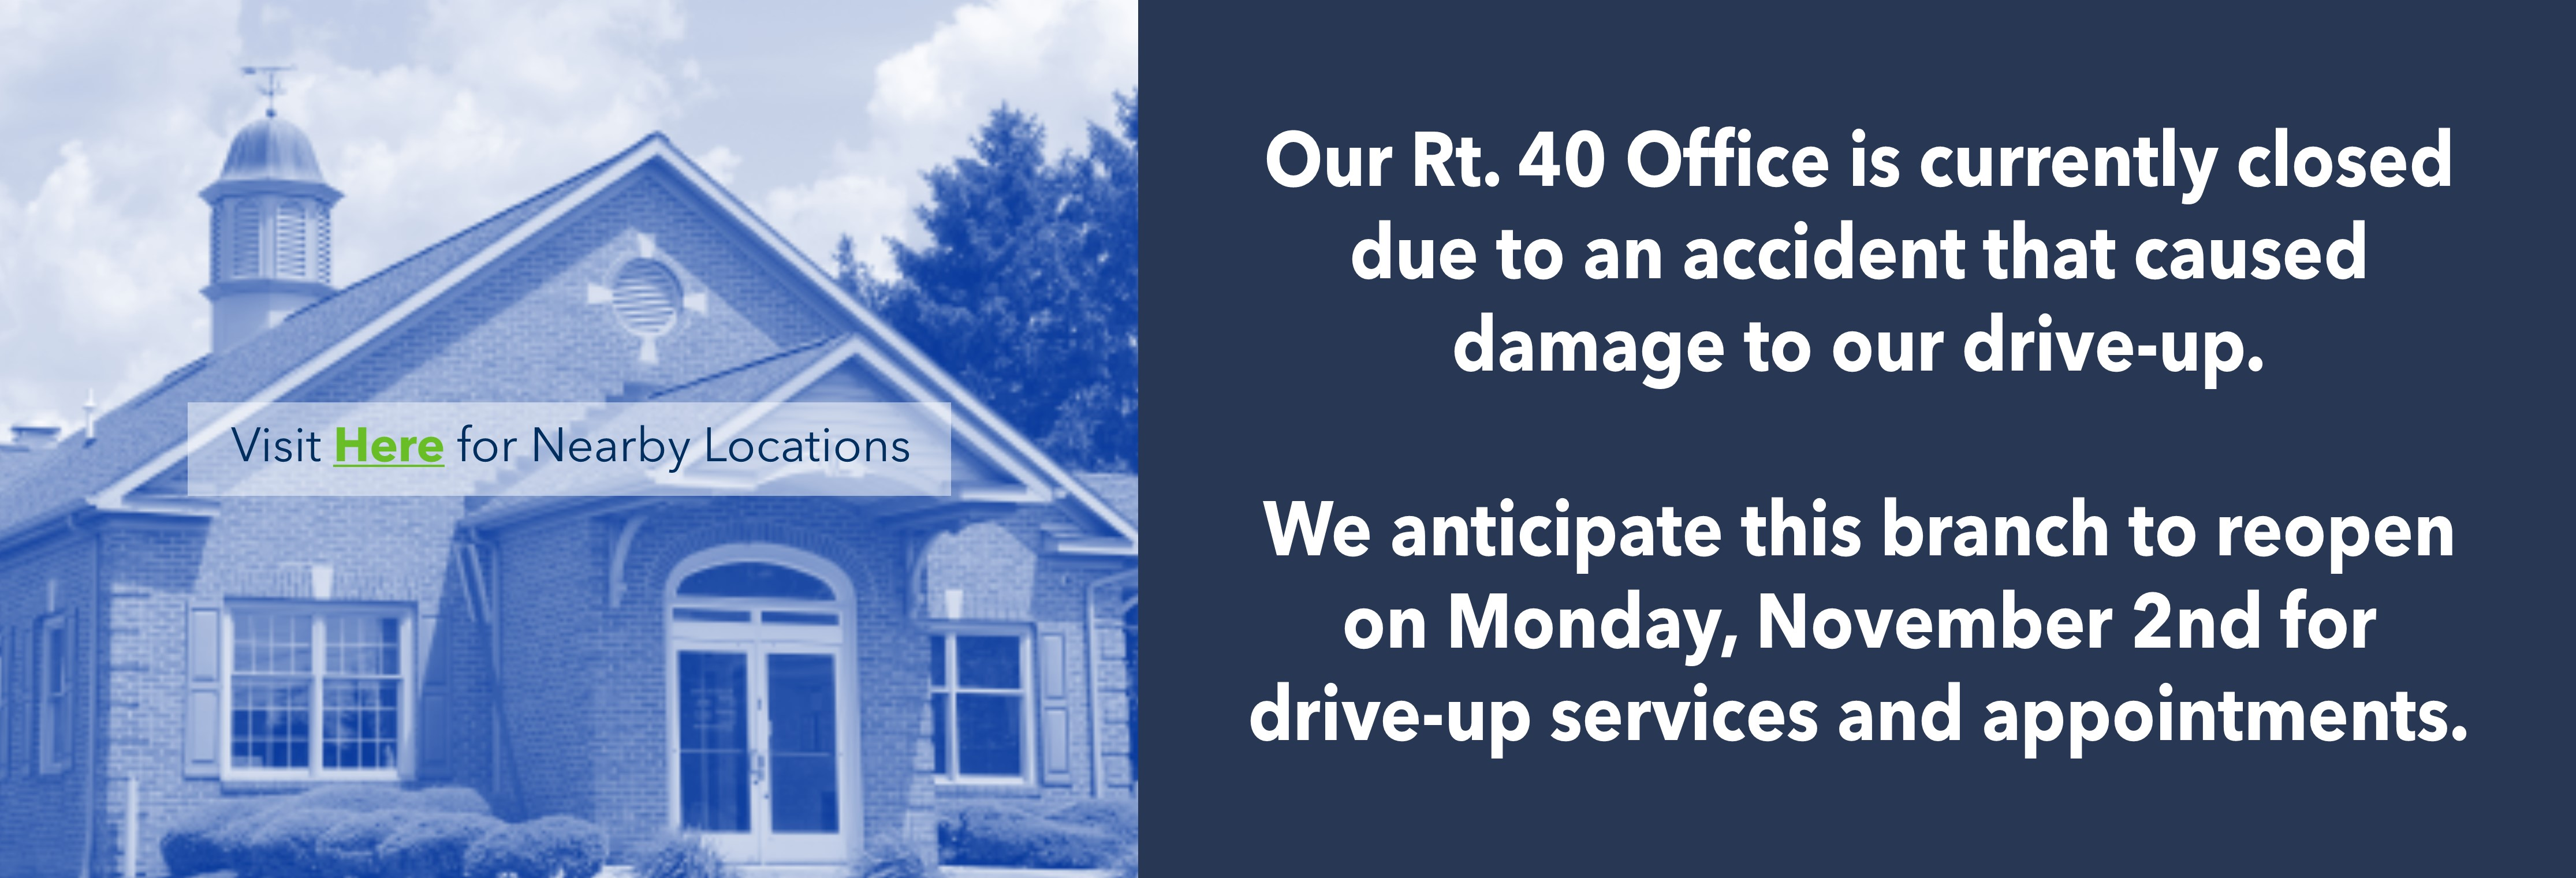 Our Rt. 40 Office is currently closed due to an accident that caused damage to our drive-up. We anticipate our Rt. 40 branch to reopen on Monday, November 2nd for drive-up services and appointments.